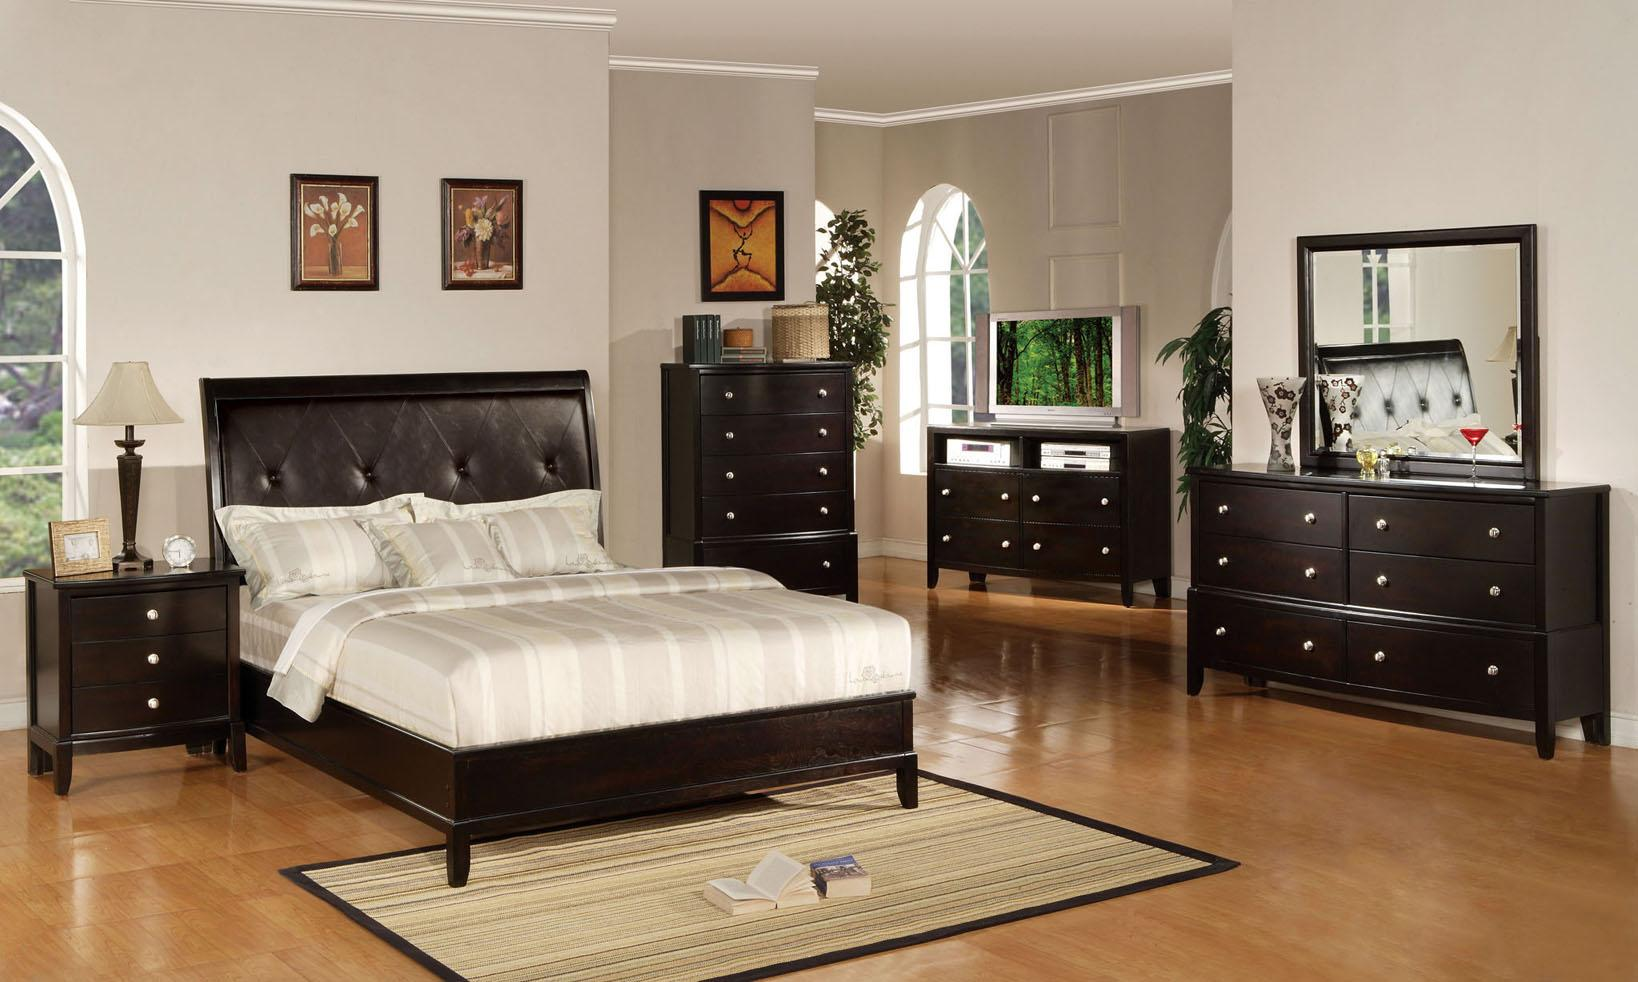 Acme Furniture Oxford King Bedroom Group - Item Number: 1430 King Bedroom Group